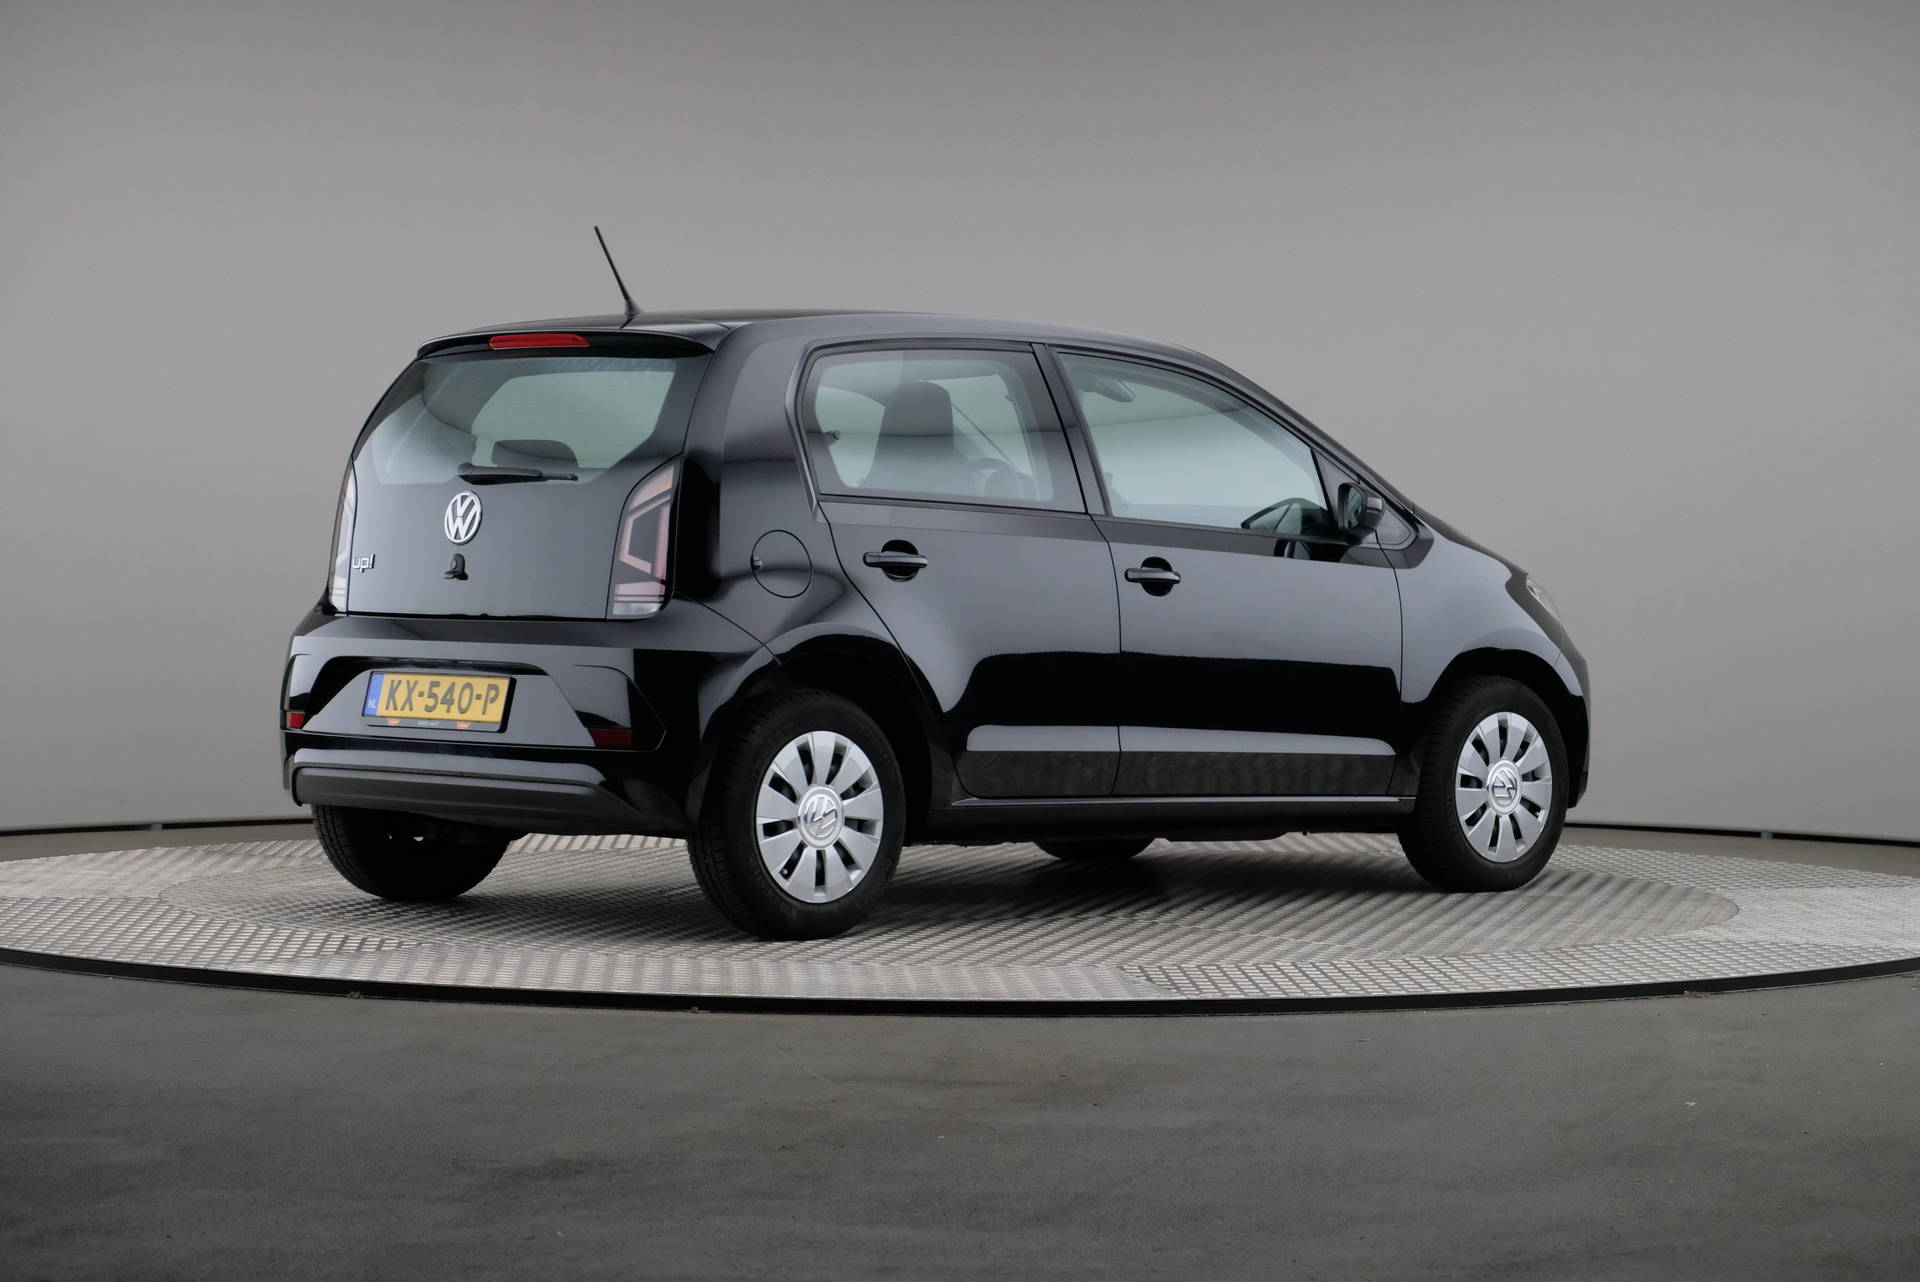 Volkswagen up! 1.0 44kW Move up! BlueMotion Technology, Airconditioning, 360-image19